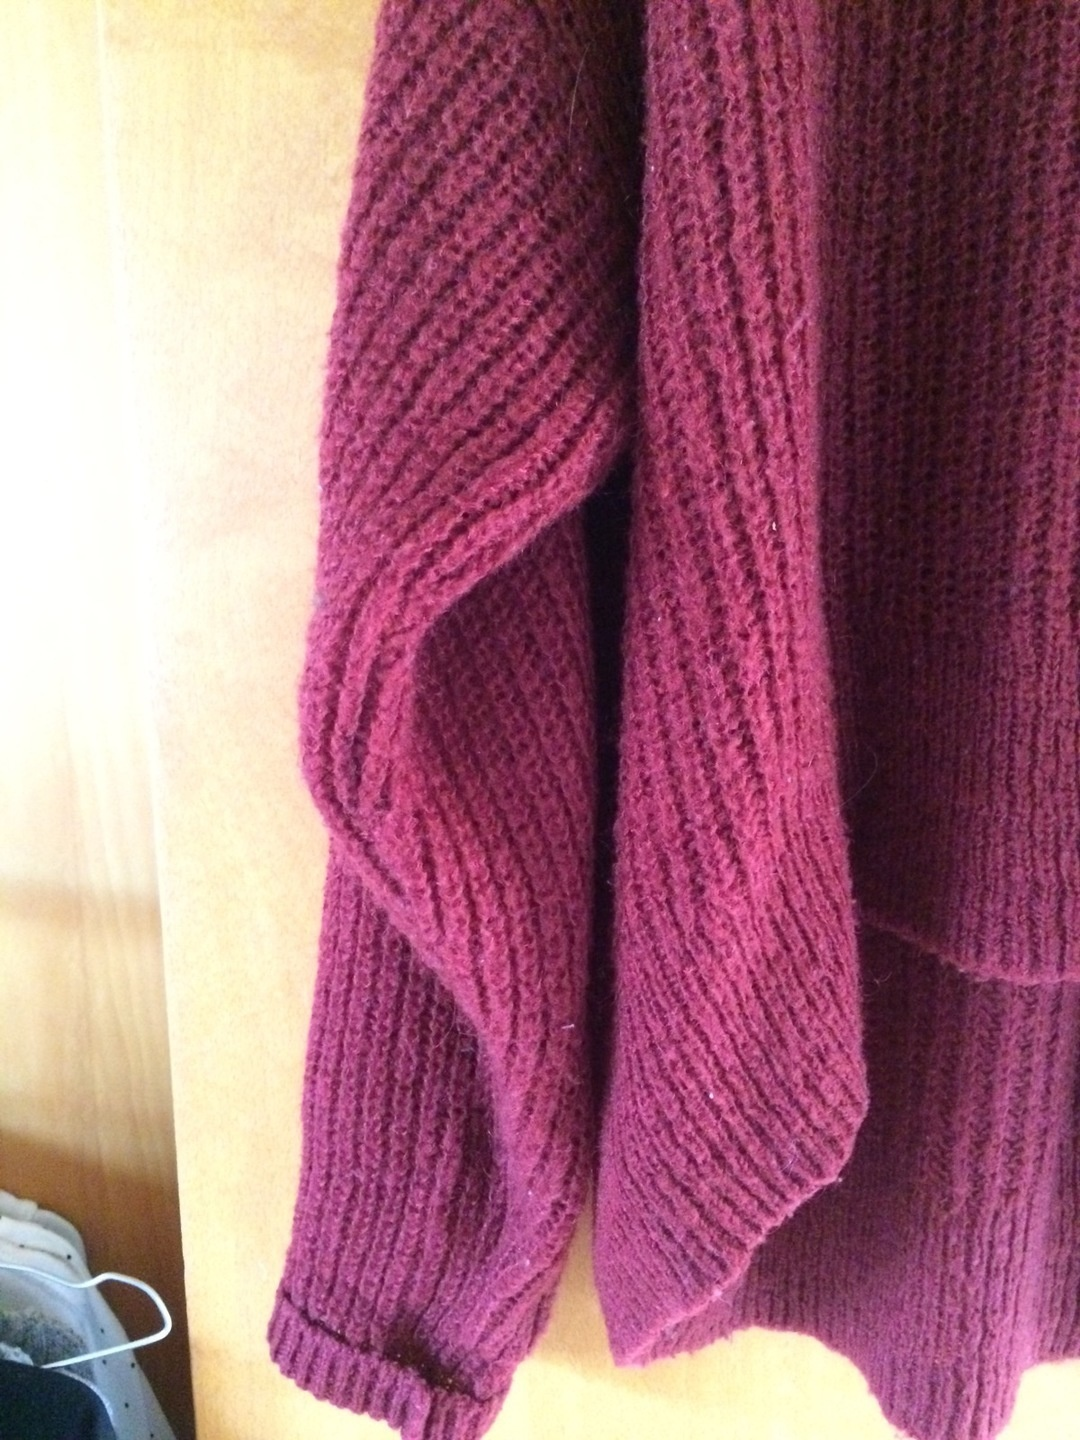 Women's jumpers & cardigans - L.O.G.G. (H&M) photo 2